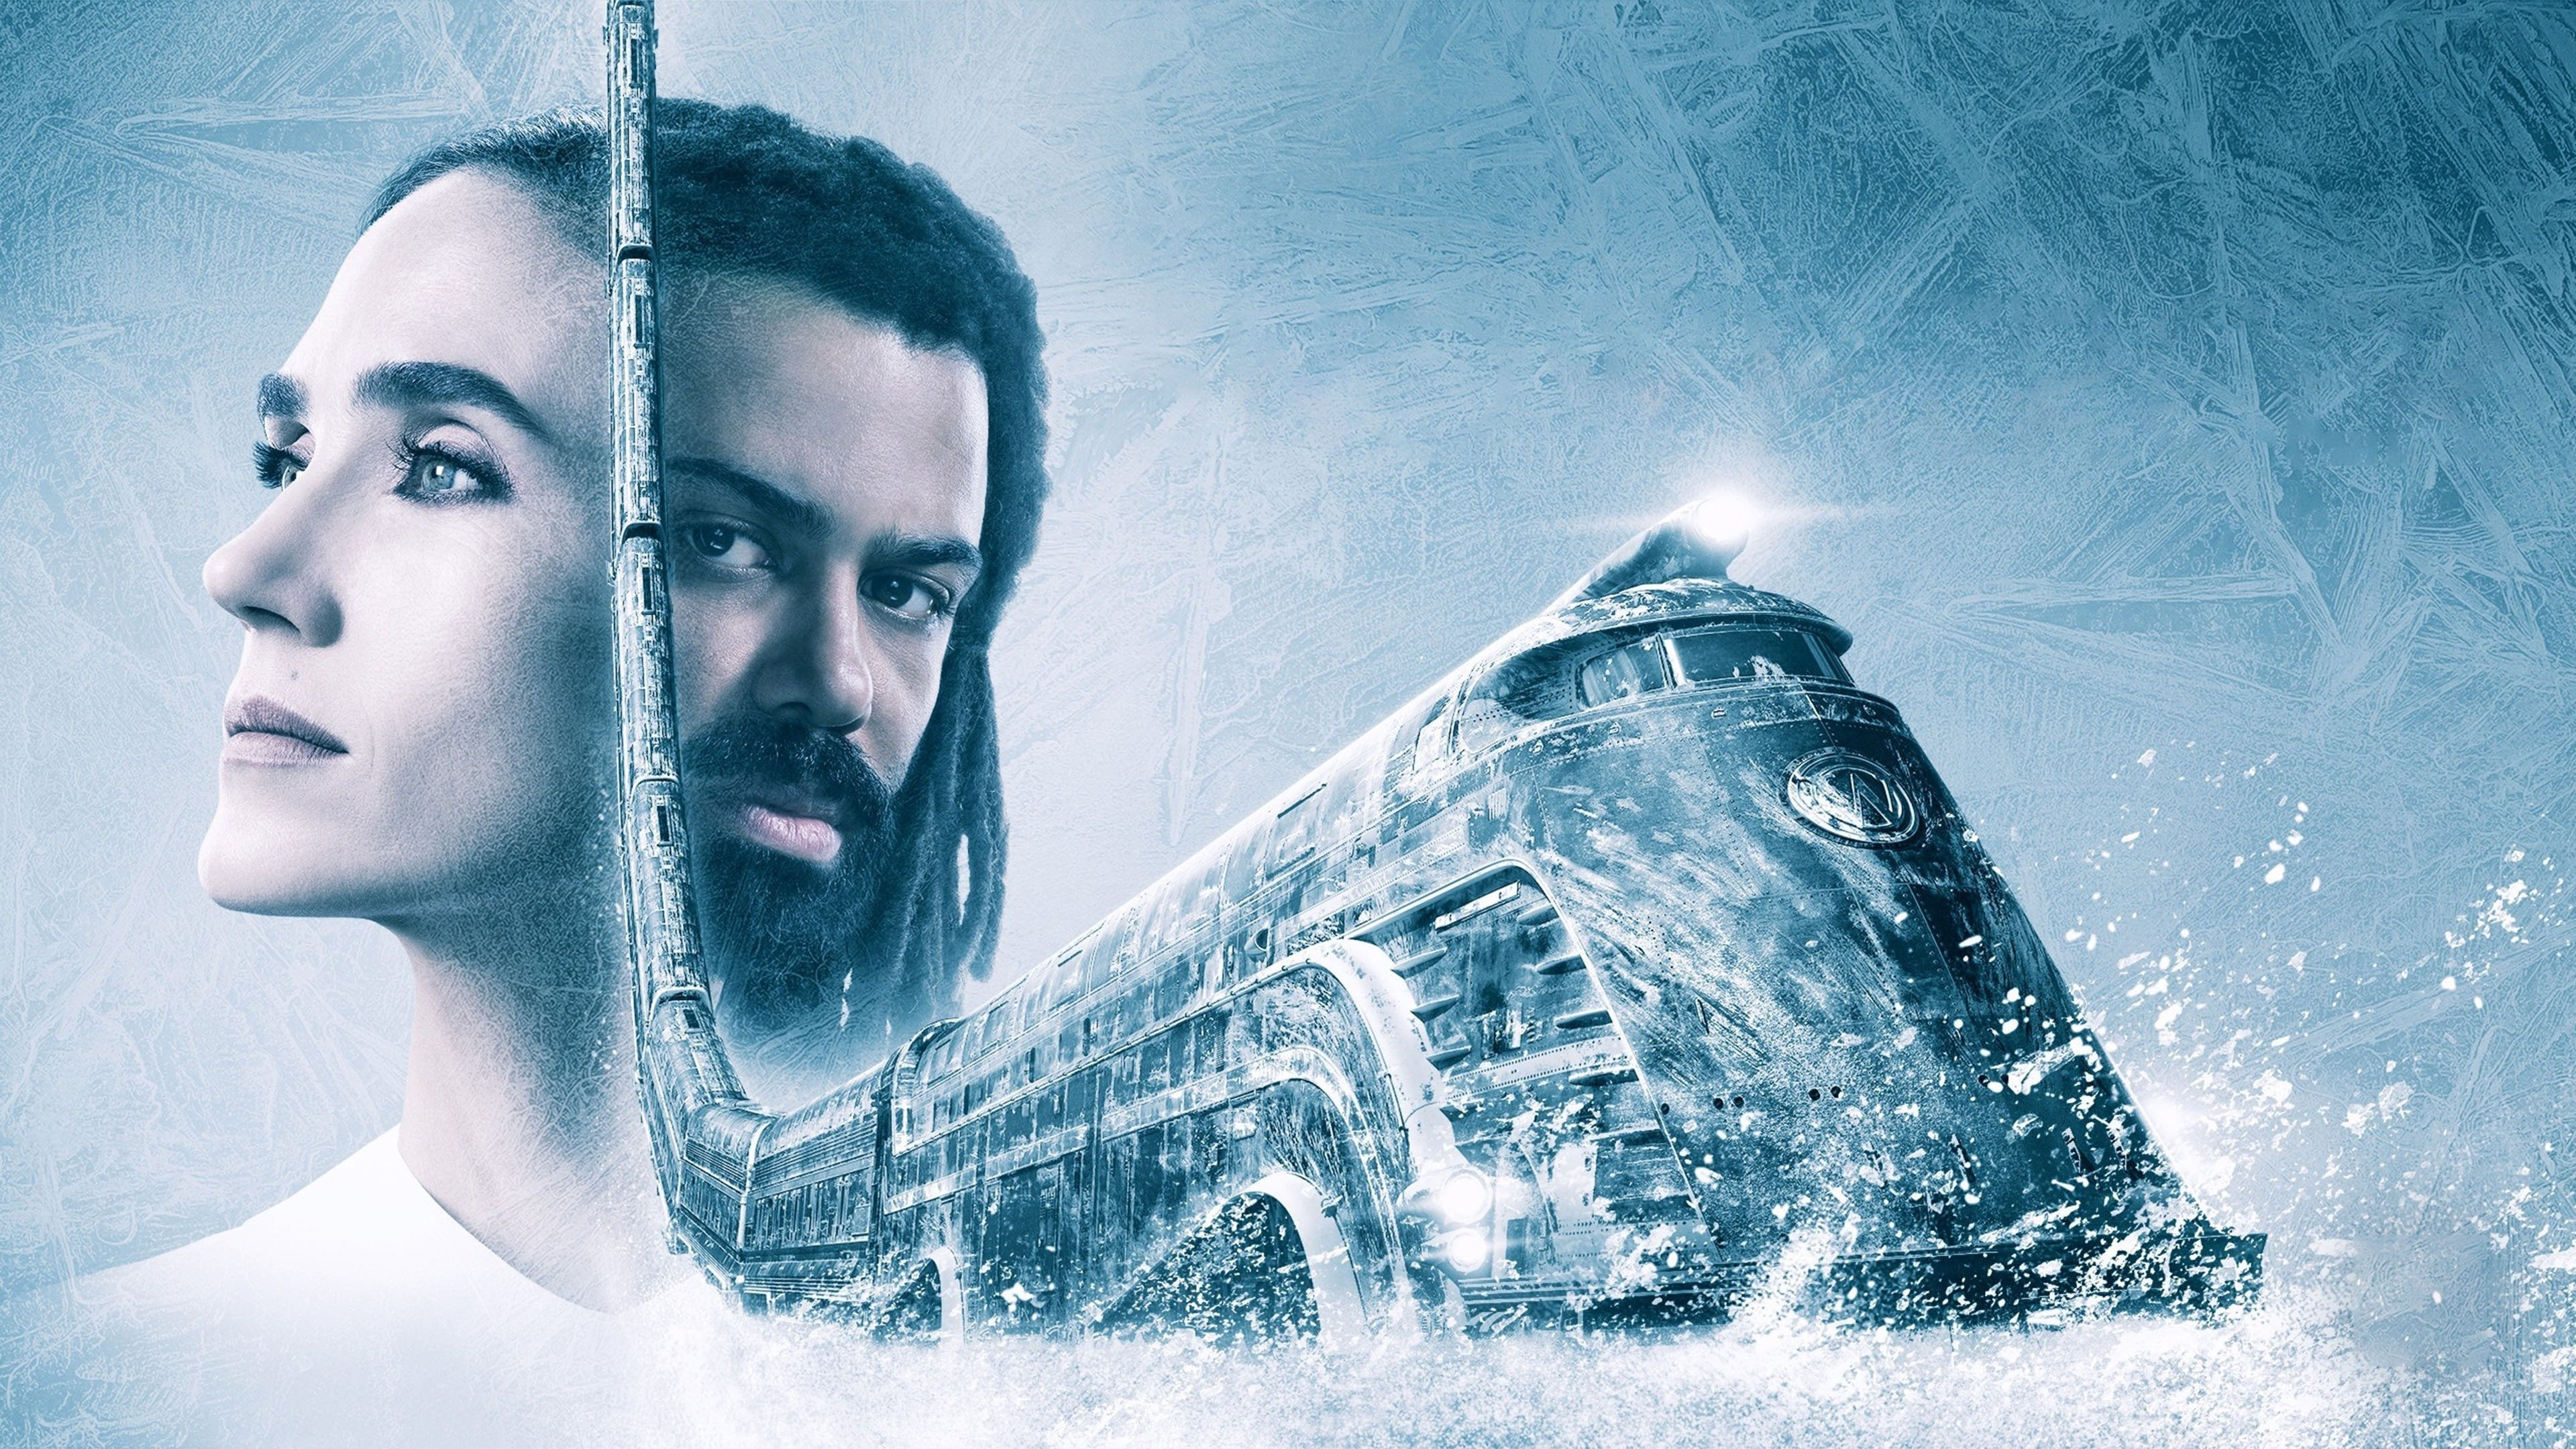 Snowpiercer Season 1 Episode 5